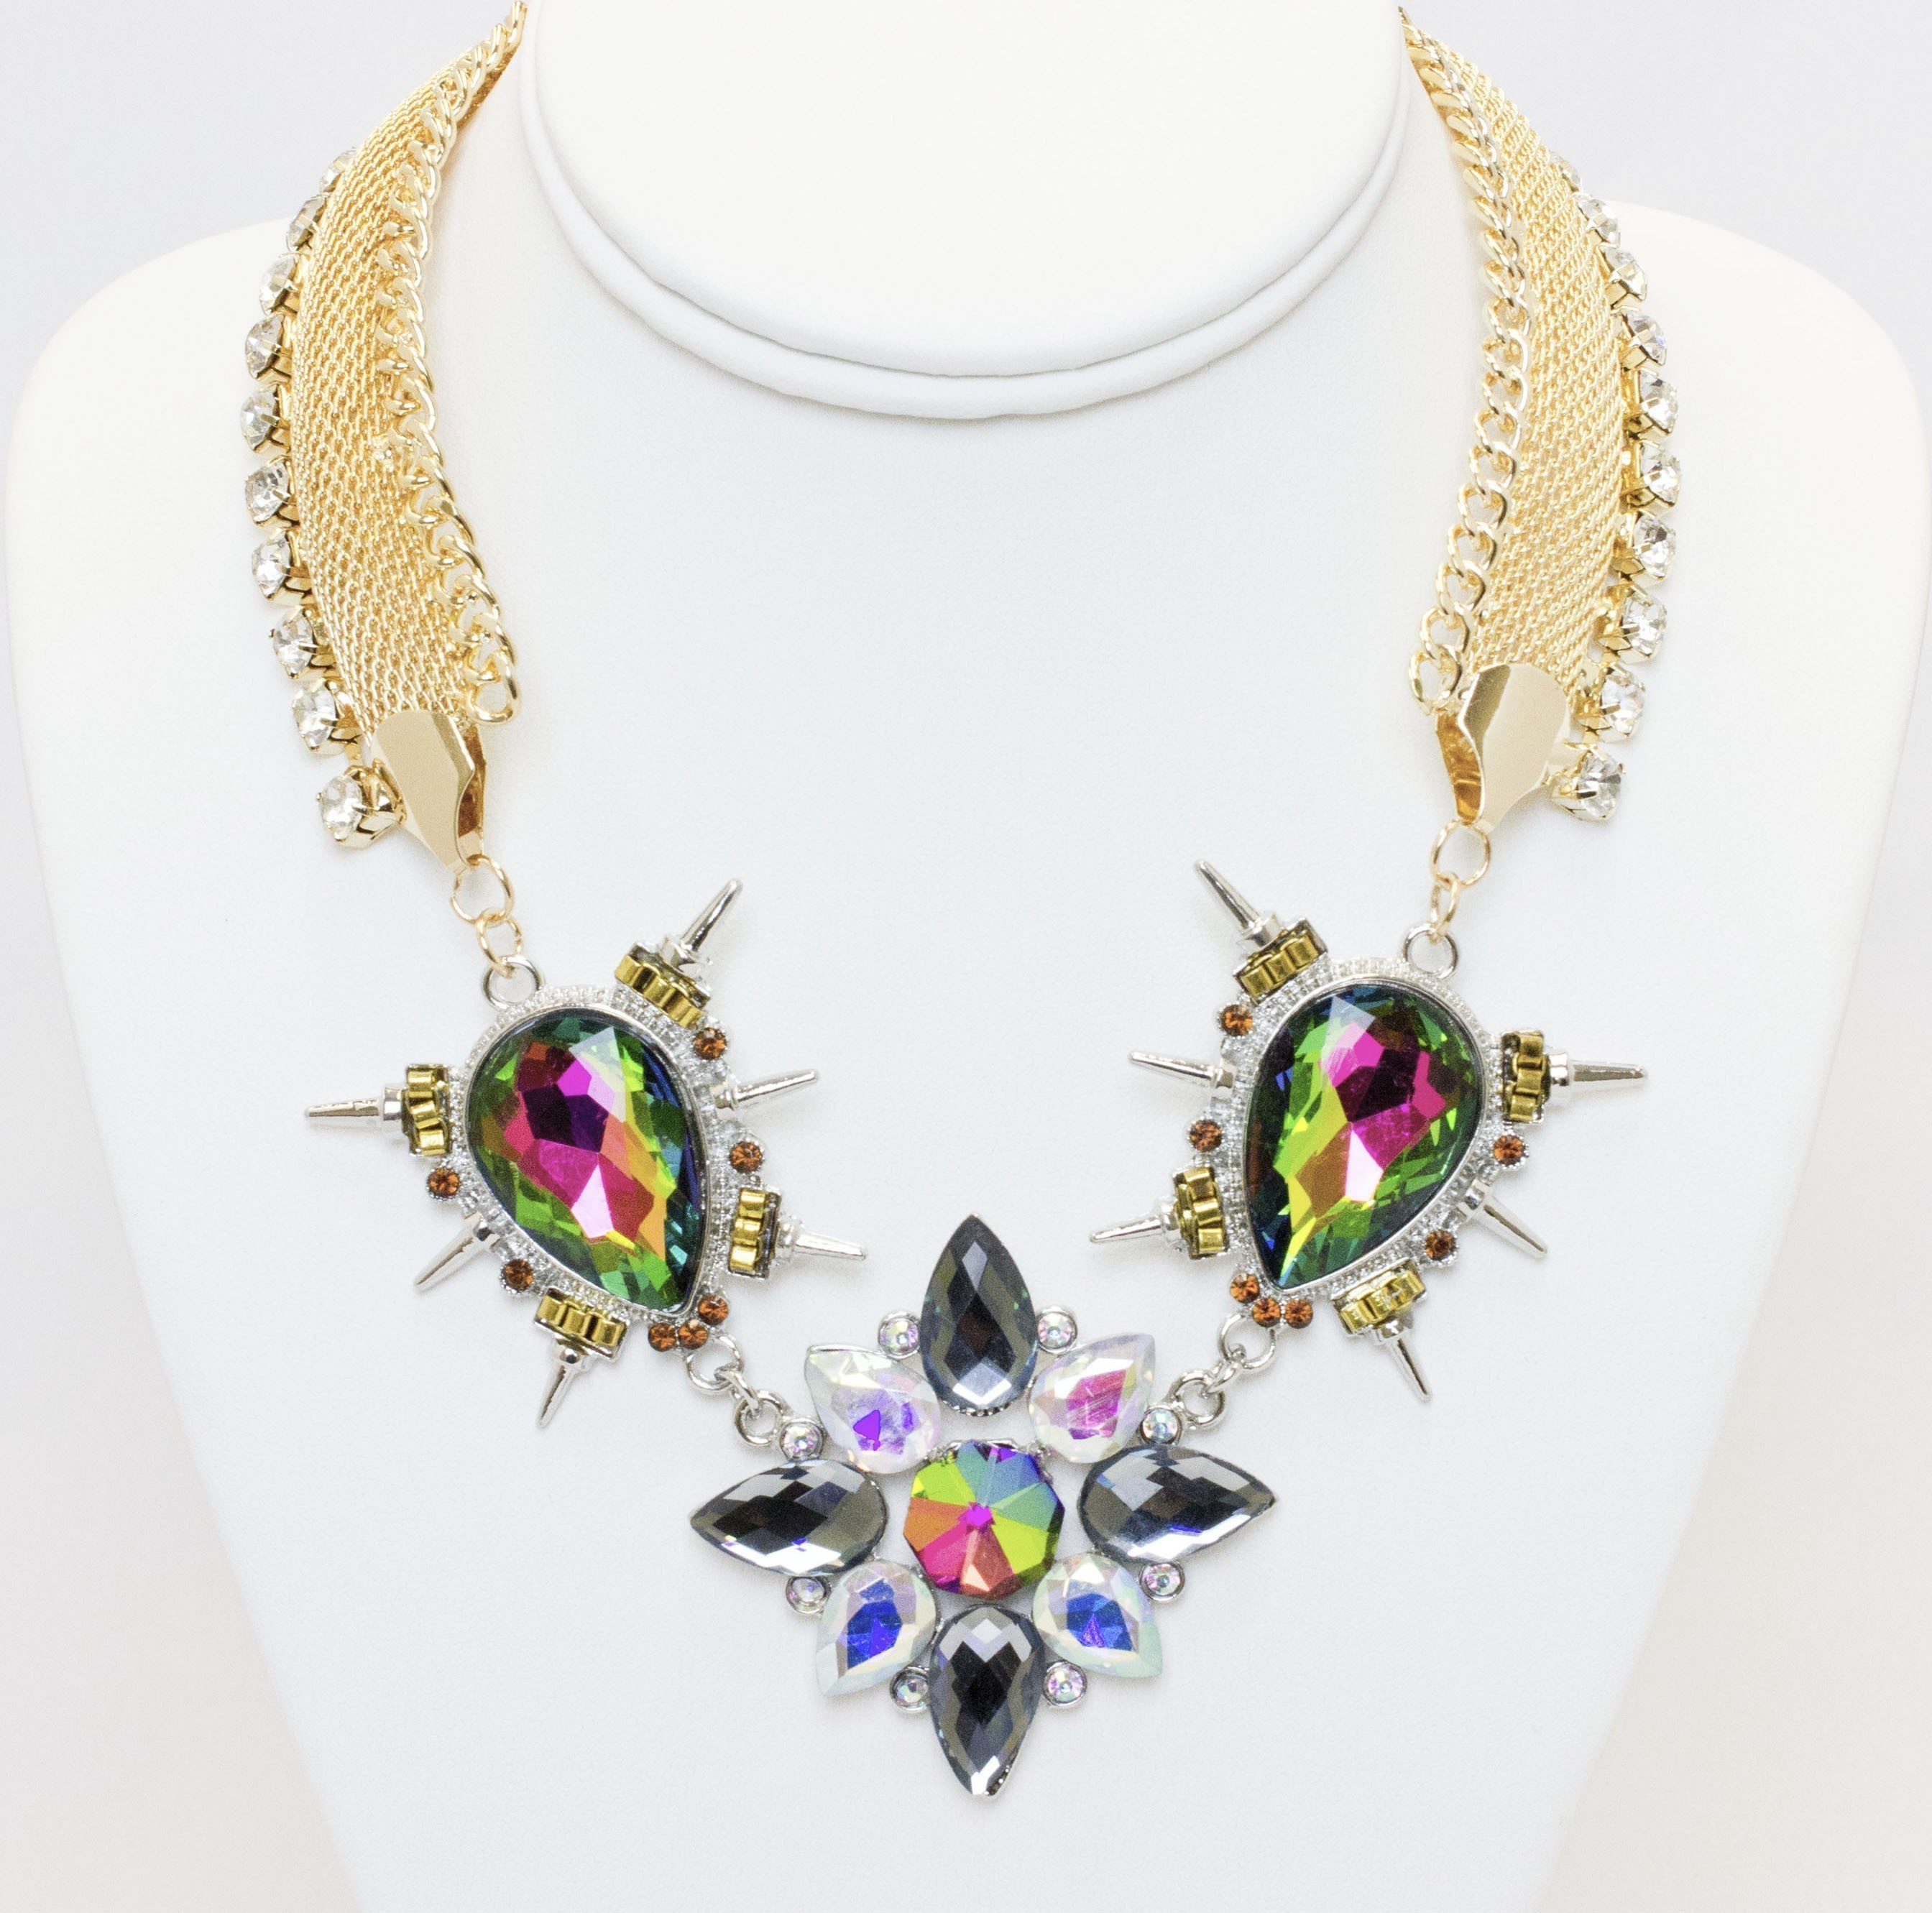 Stone Collar Statement Necklace